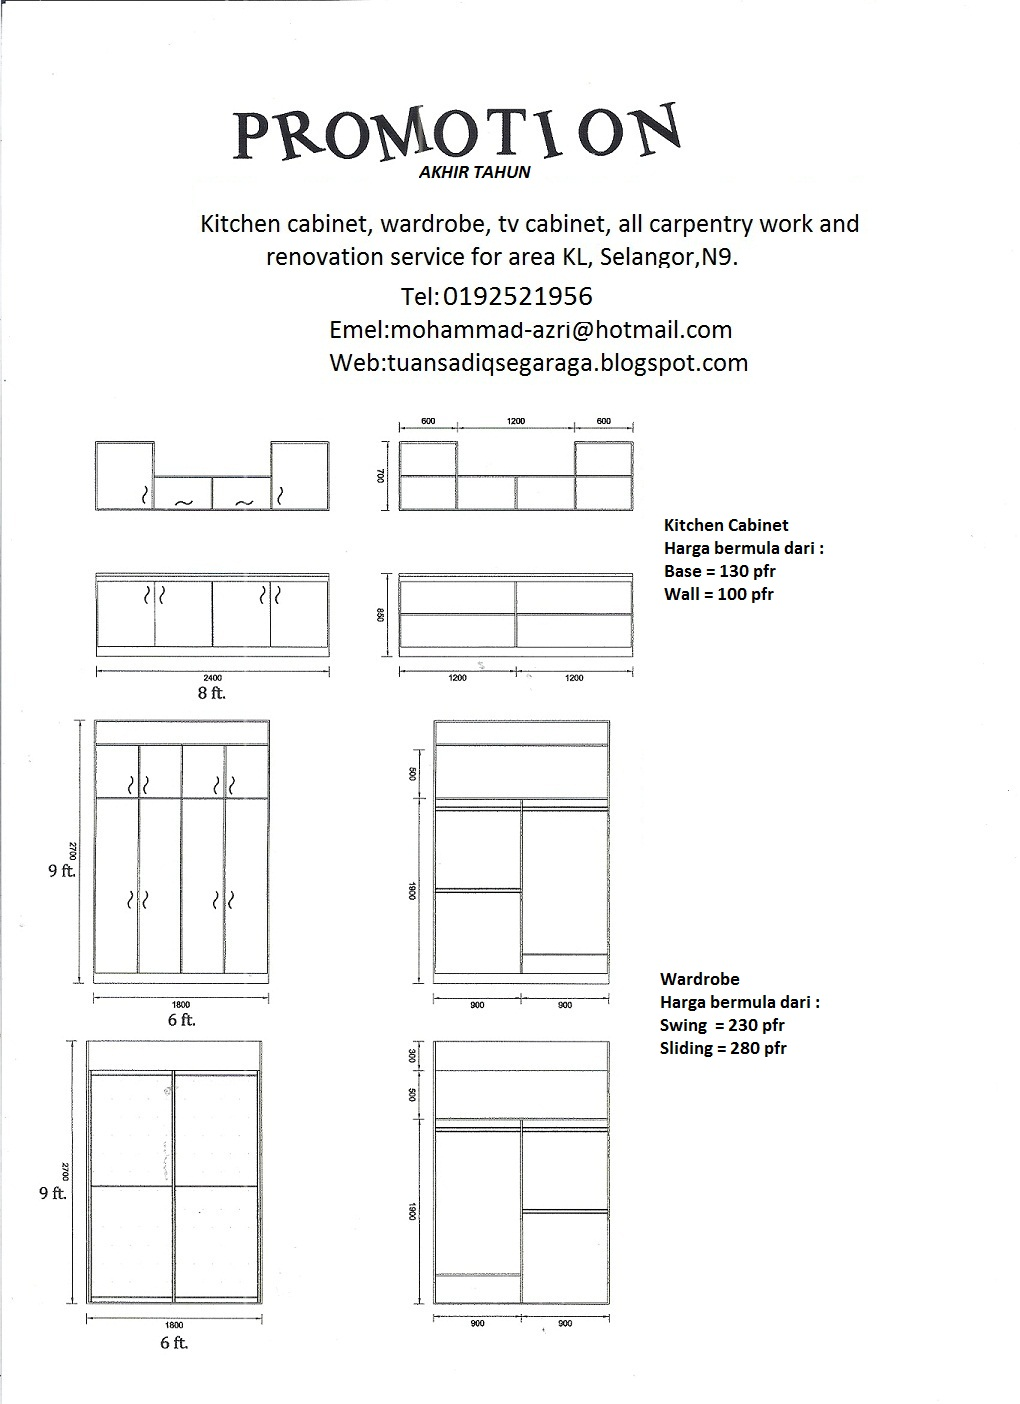 Promotion - Kitchen cabinet and renovation services